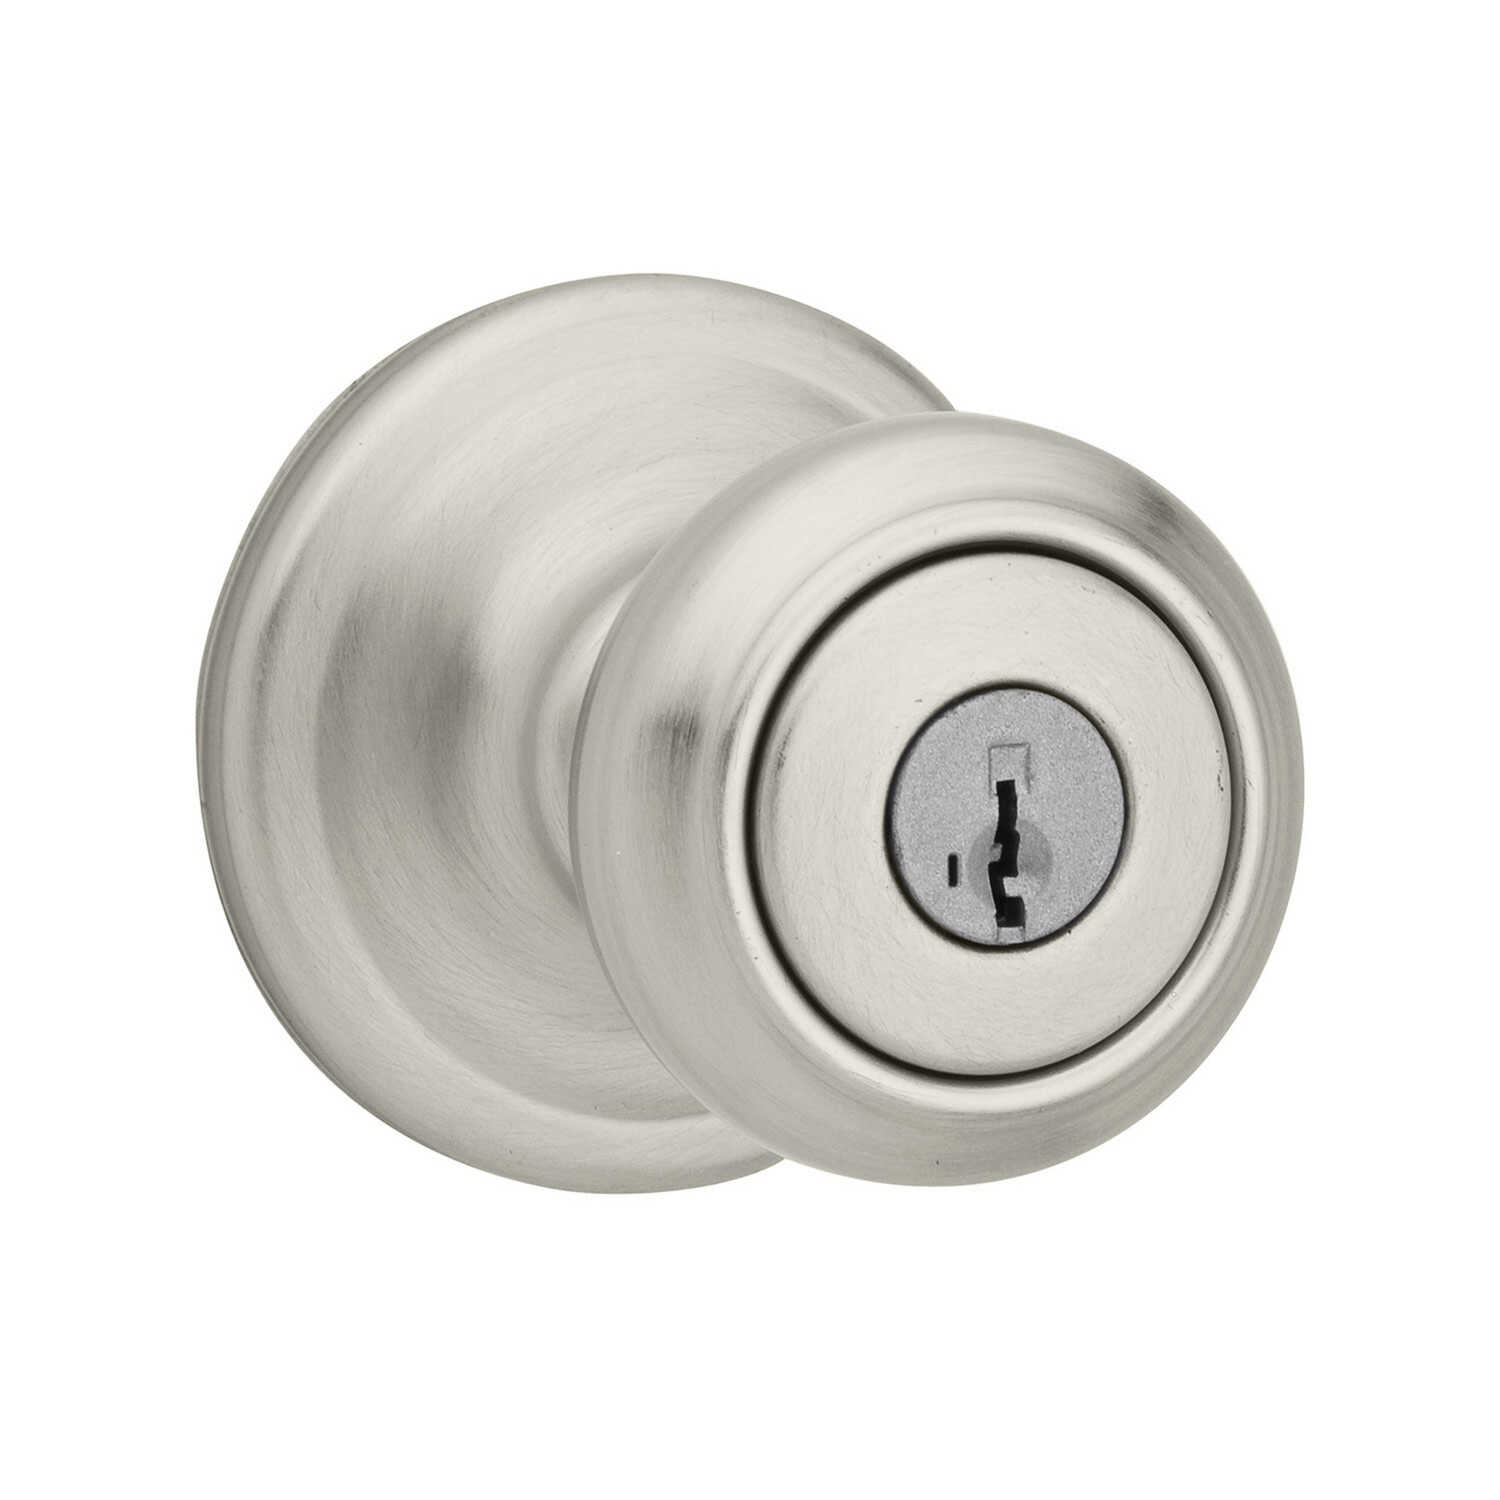 Kwikset  Cameron  Satin Nickel  Steel  ANSI/BHMA Grade 2  1-3/4 in. Entry Lockset